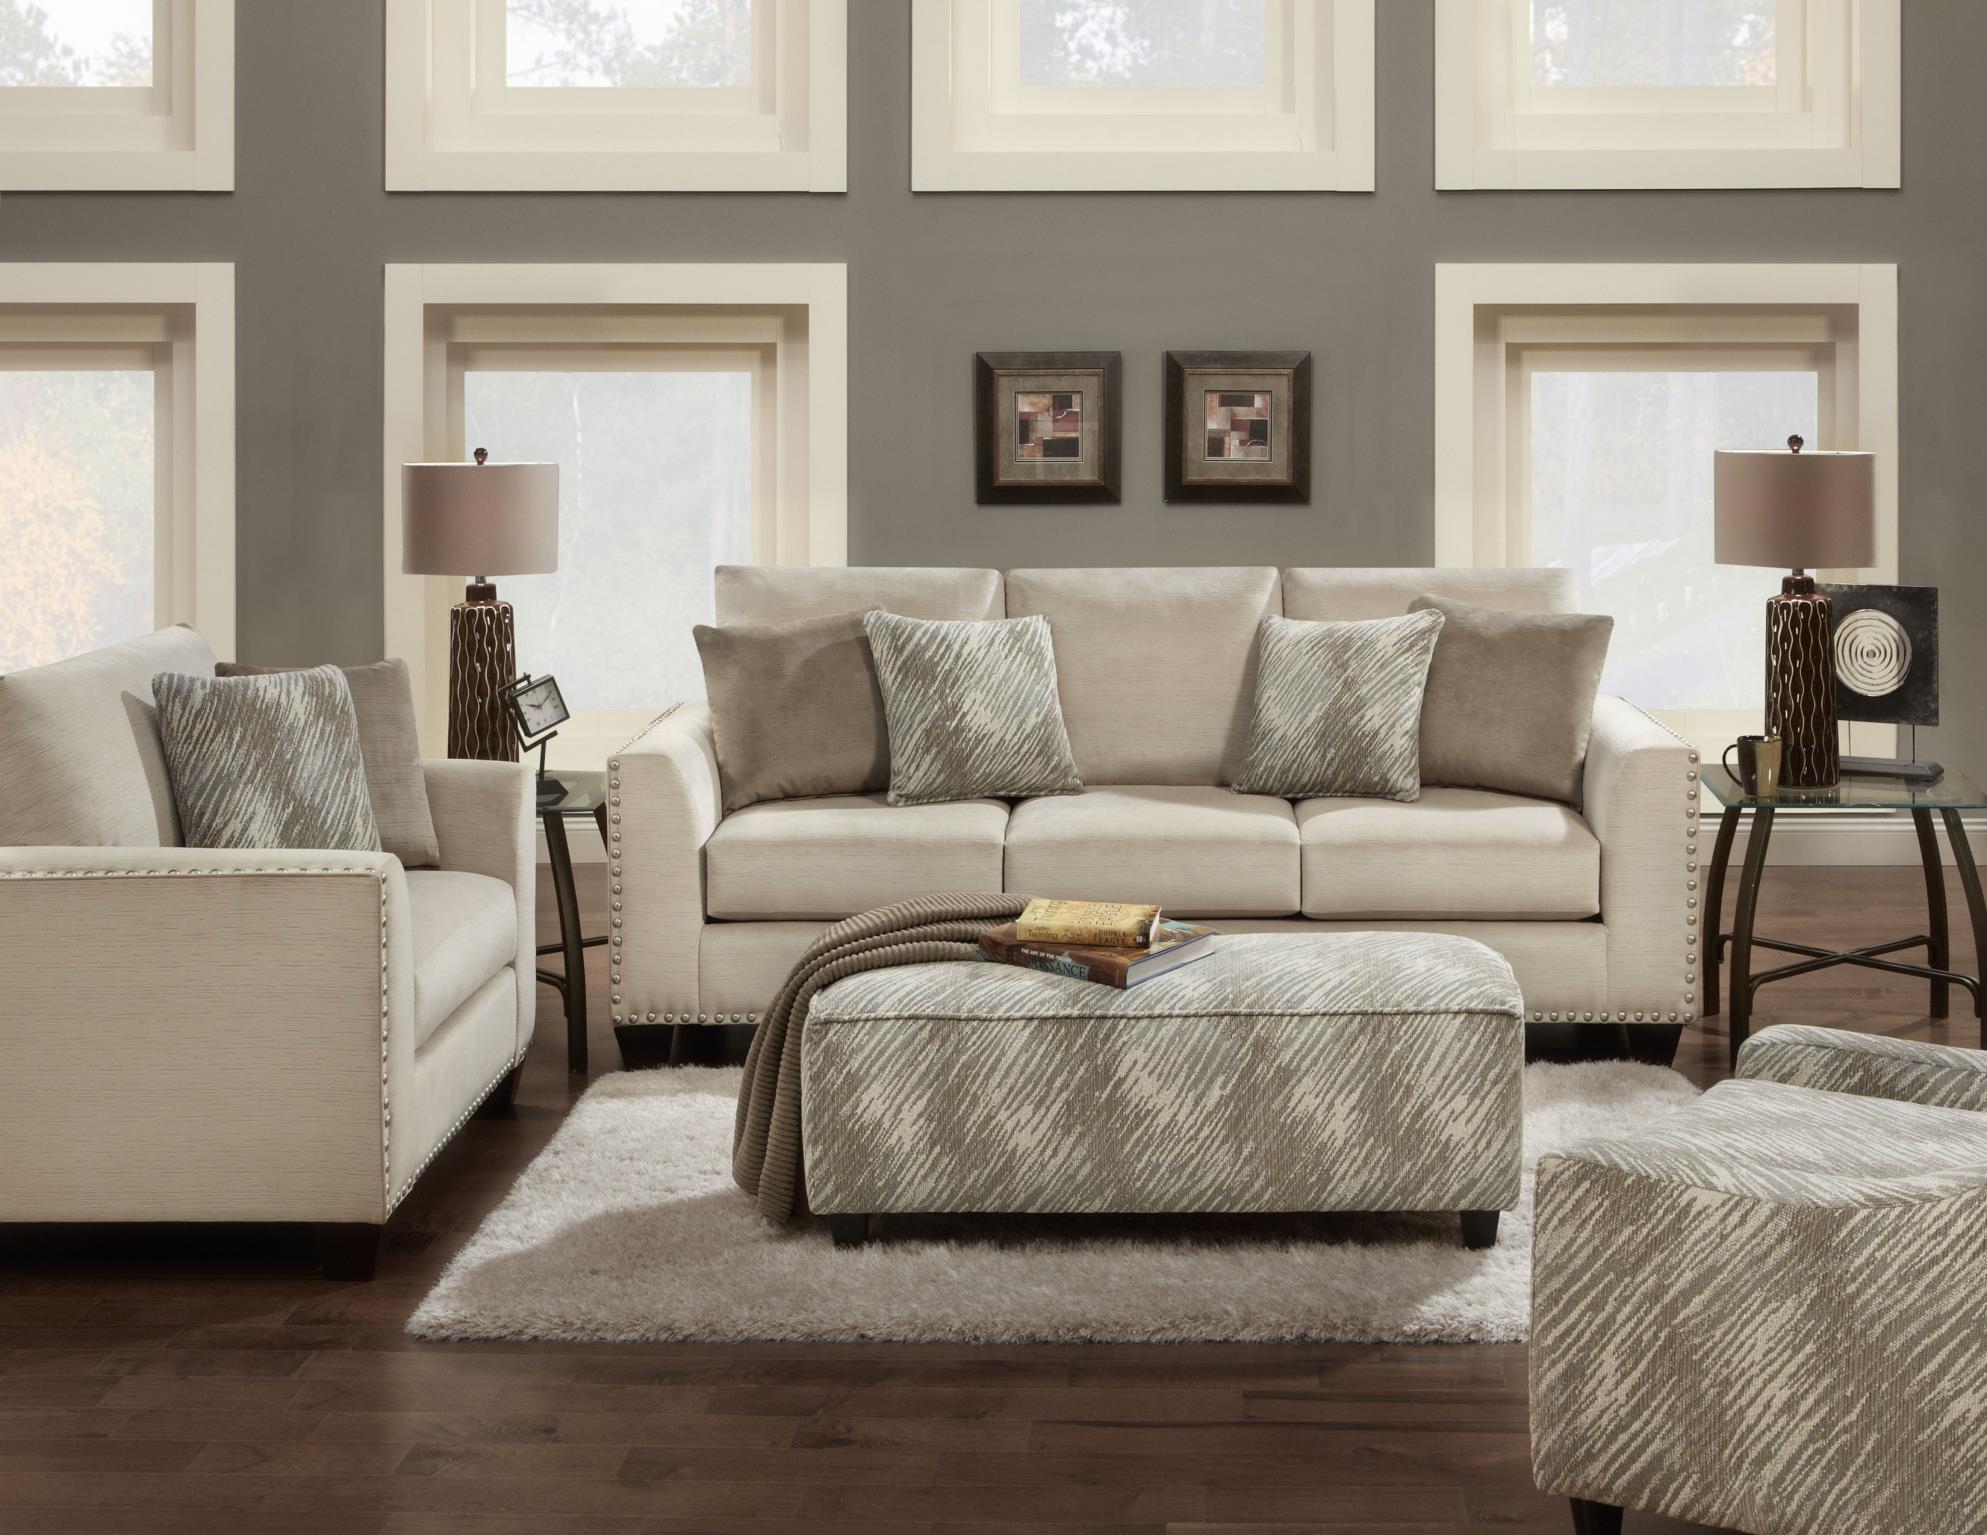 Charmant Rooms To Go Sofas And Sectionals Style Reclining within Room To Go Living Room Set